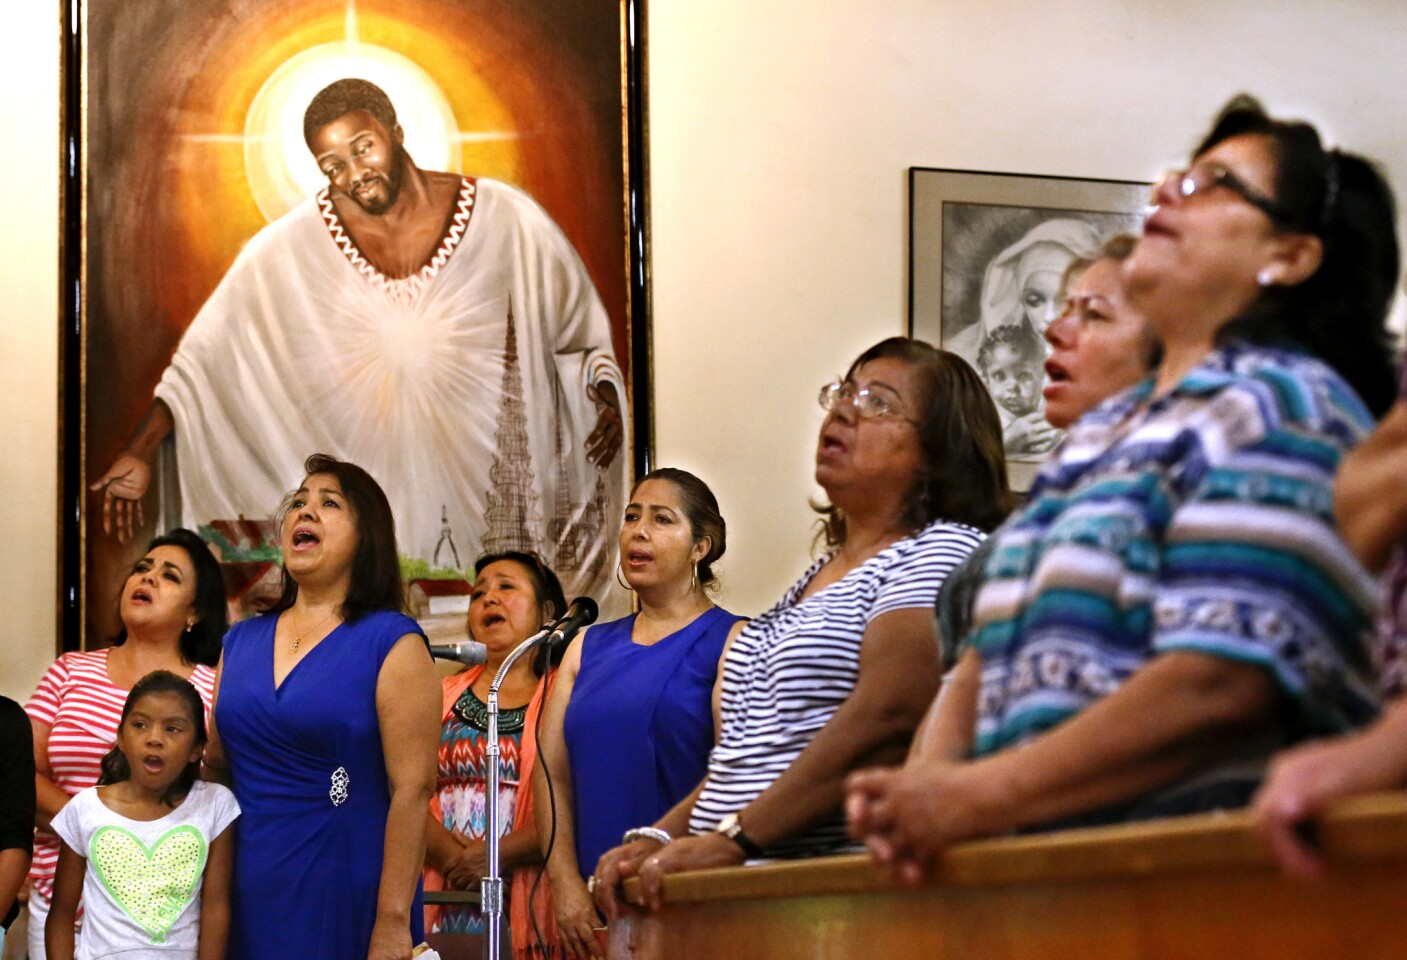 """Members of St. Lawrence Brindisi Church on Compton Avenue in Watts sing during Sunday morning Mass on July 26, 2015. In the background is a painting known as """"Jesus of Watts"""" that was donated to the church some 20 years ago."""